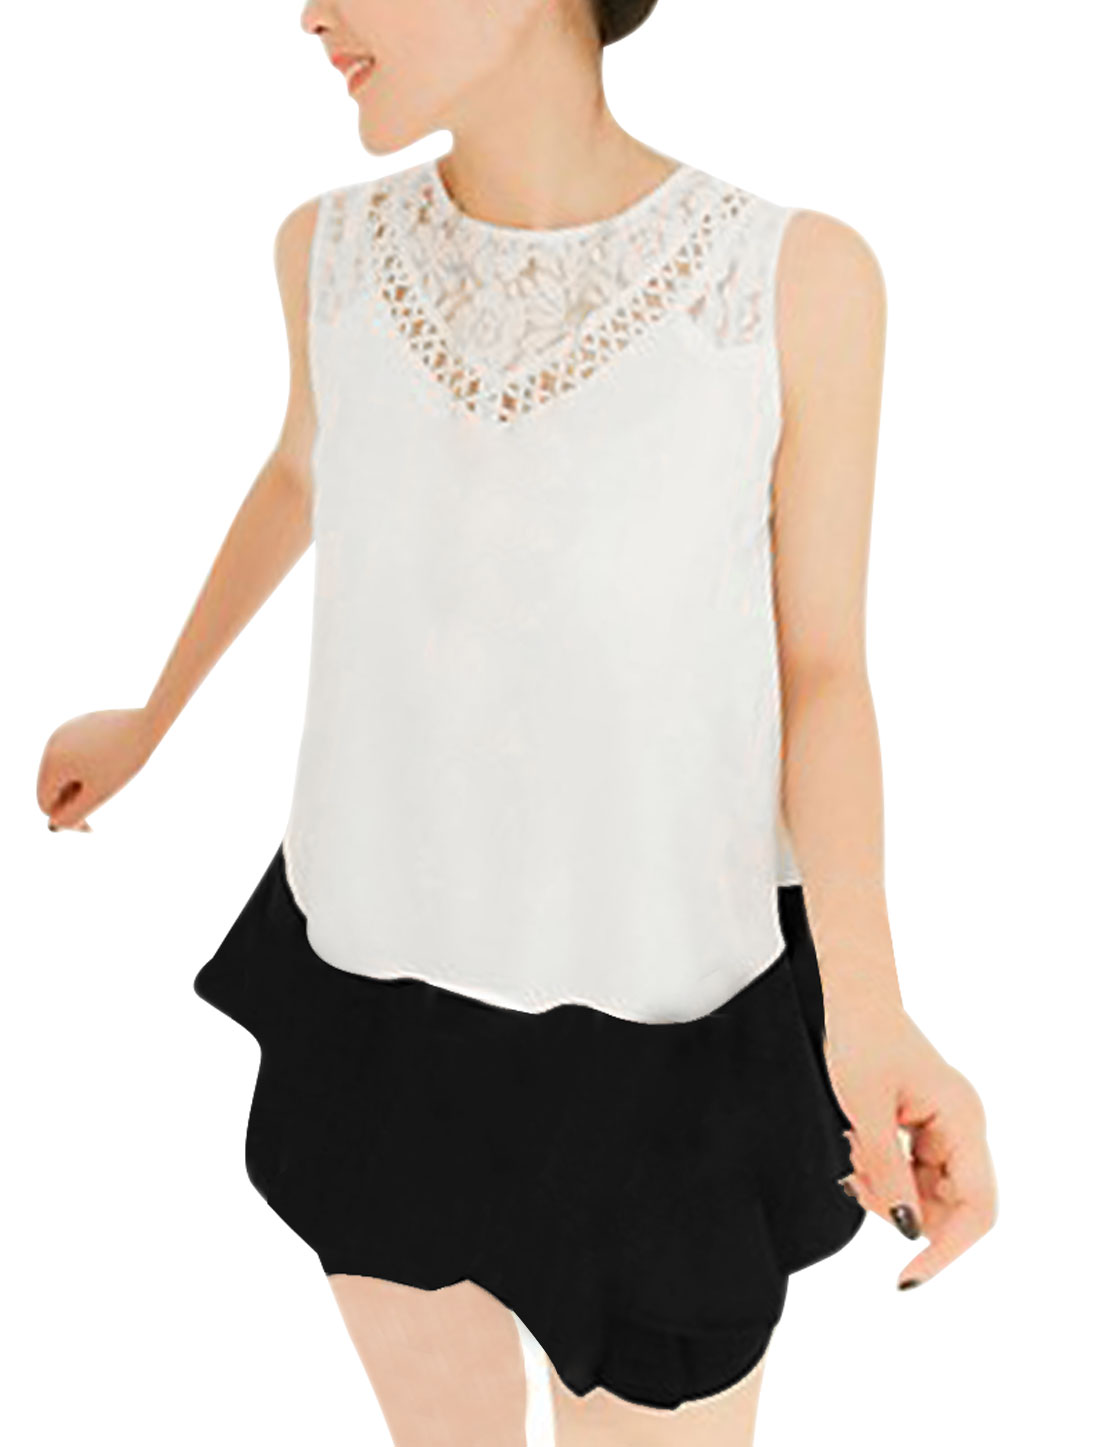 Woman Crochet Lace Round Neck Sleeveless Flare Hem White Black Casual Tops S